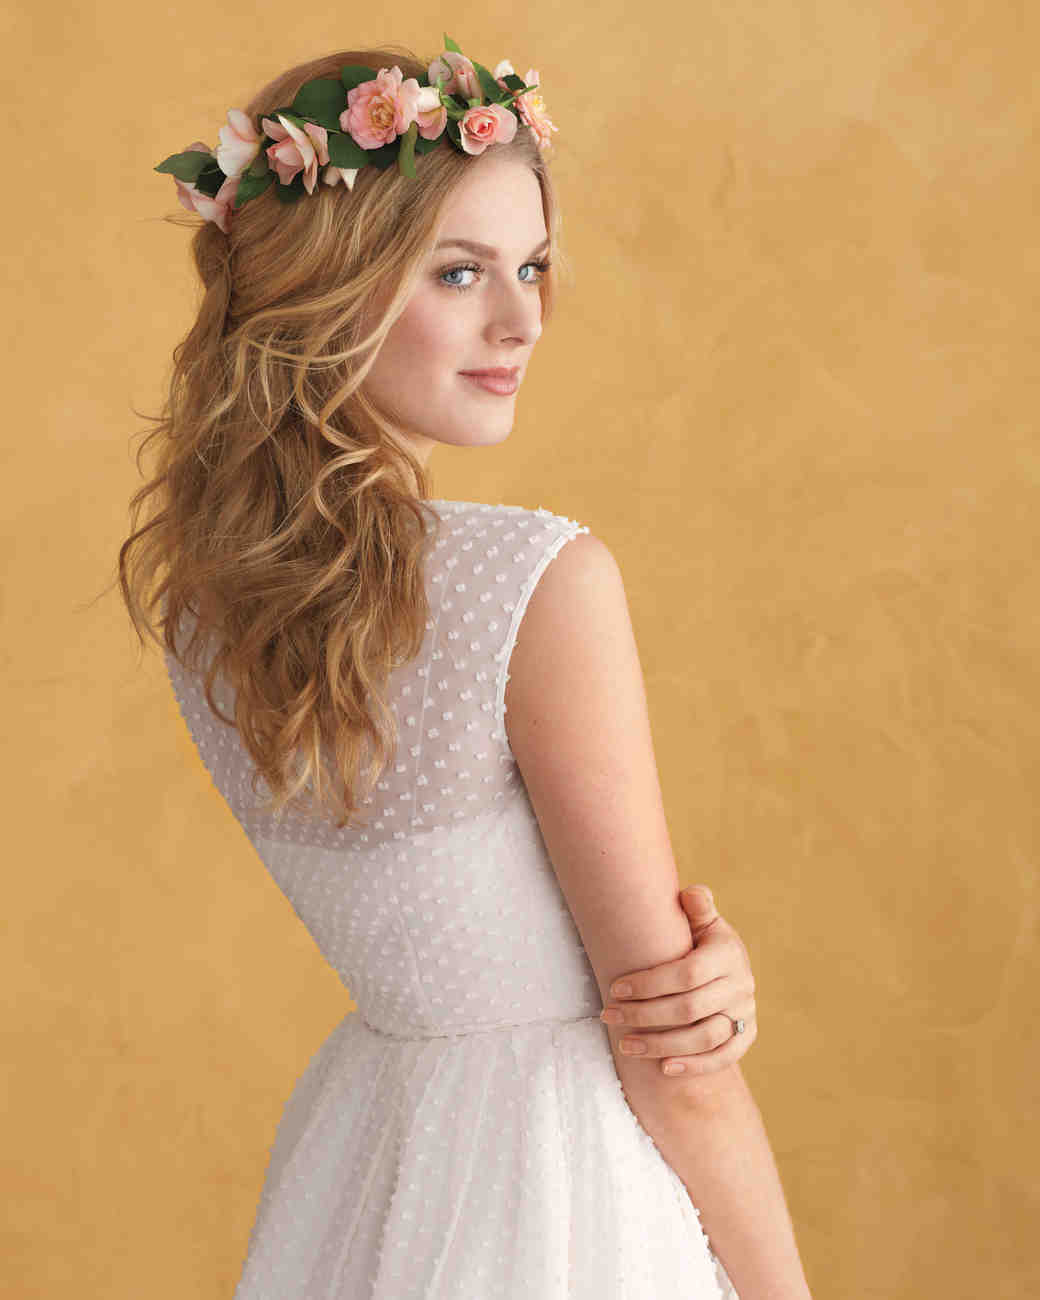 Wedding Hairstyles Bride: Floral Wedding Hairstyles